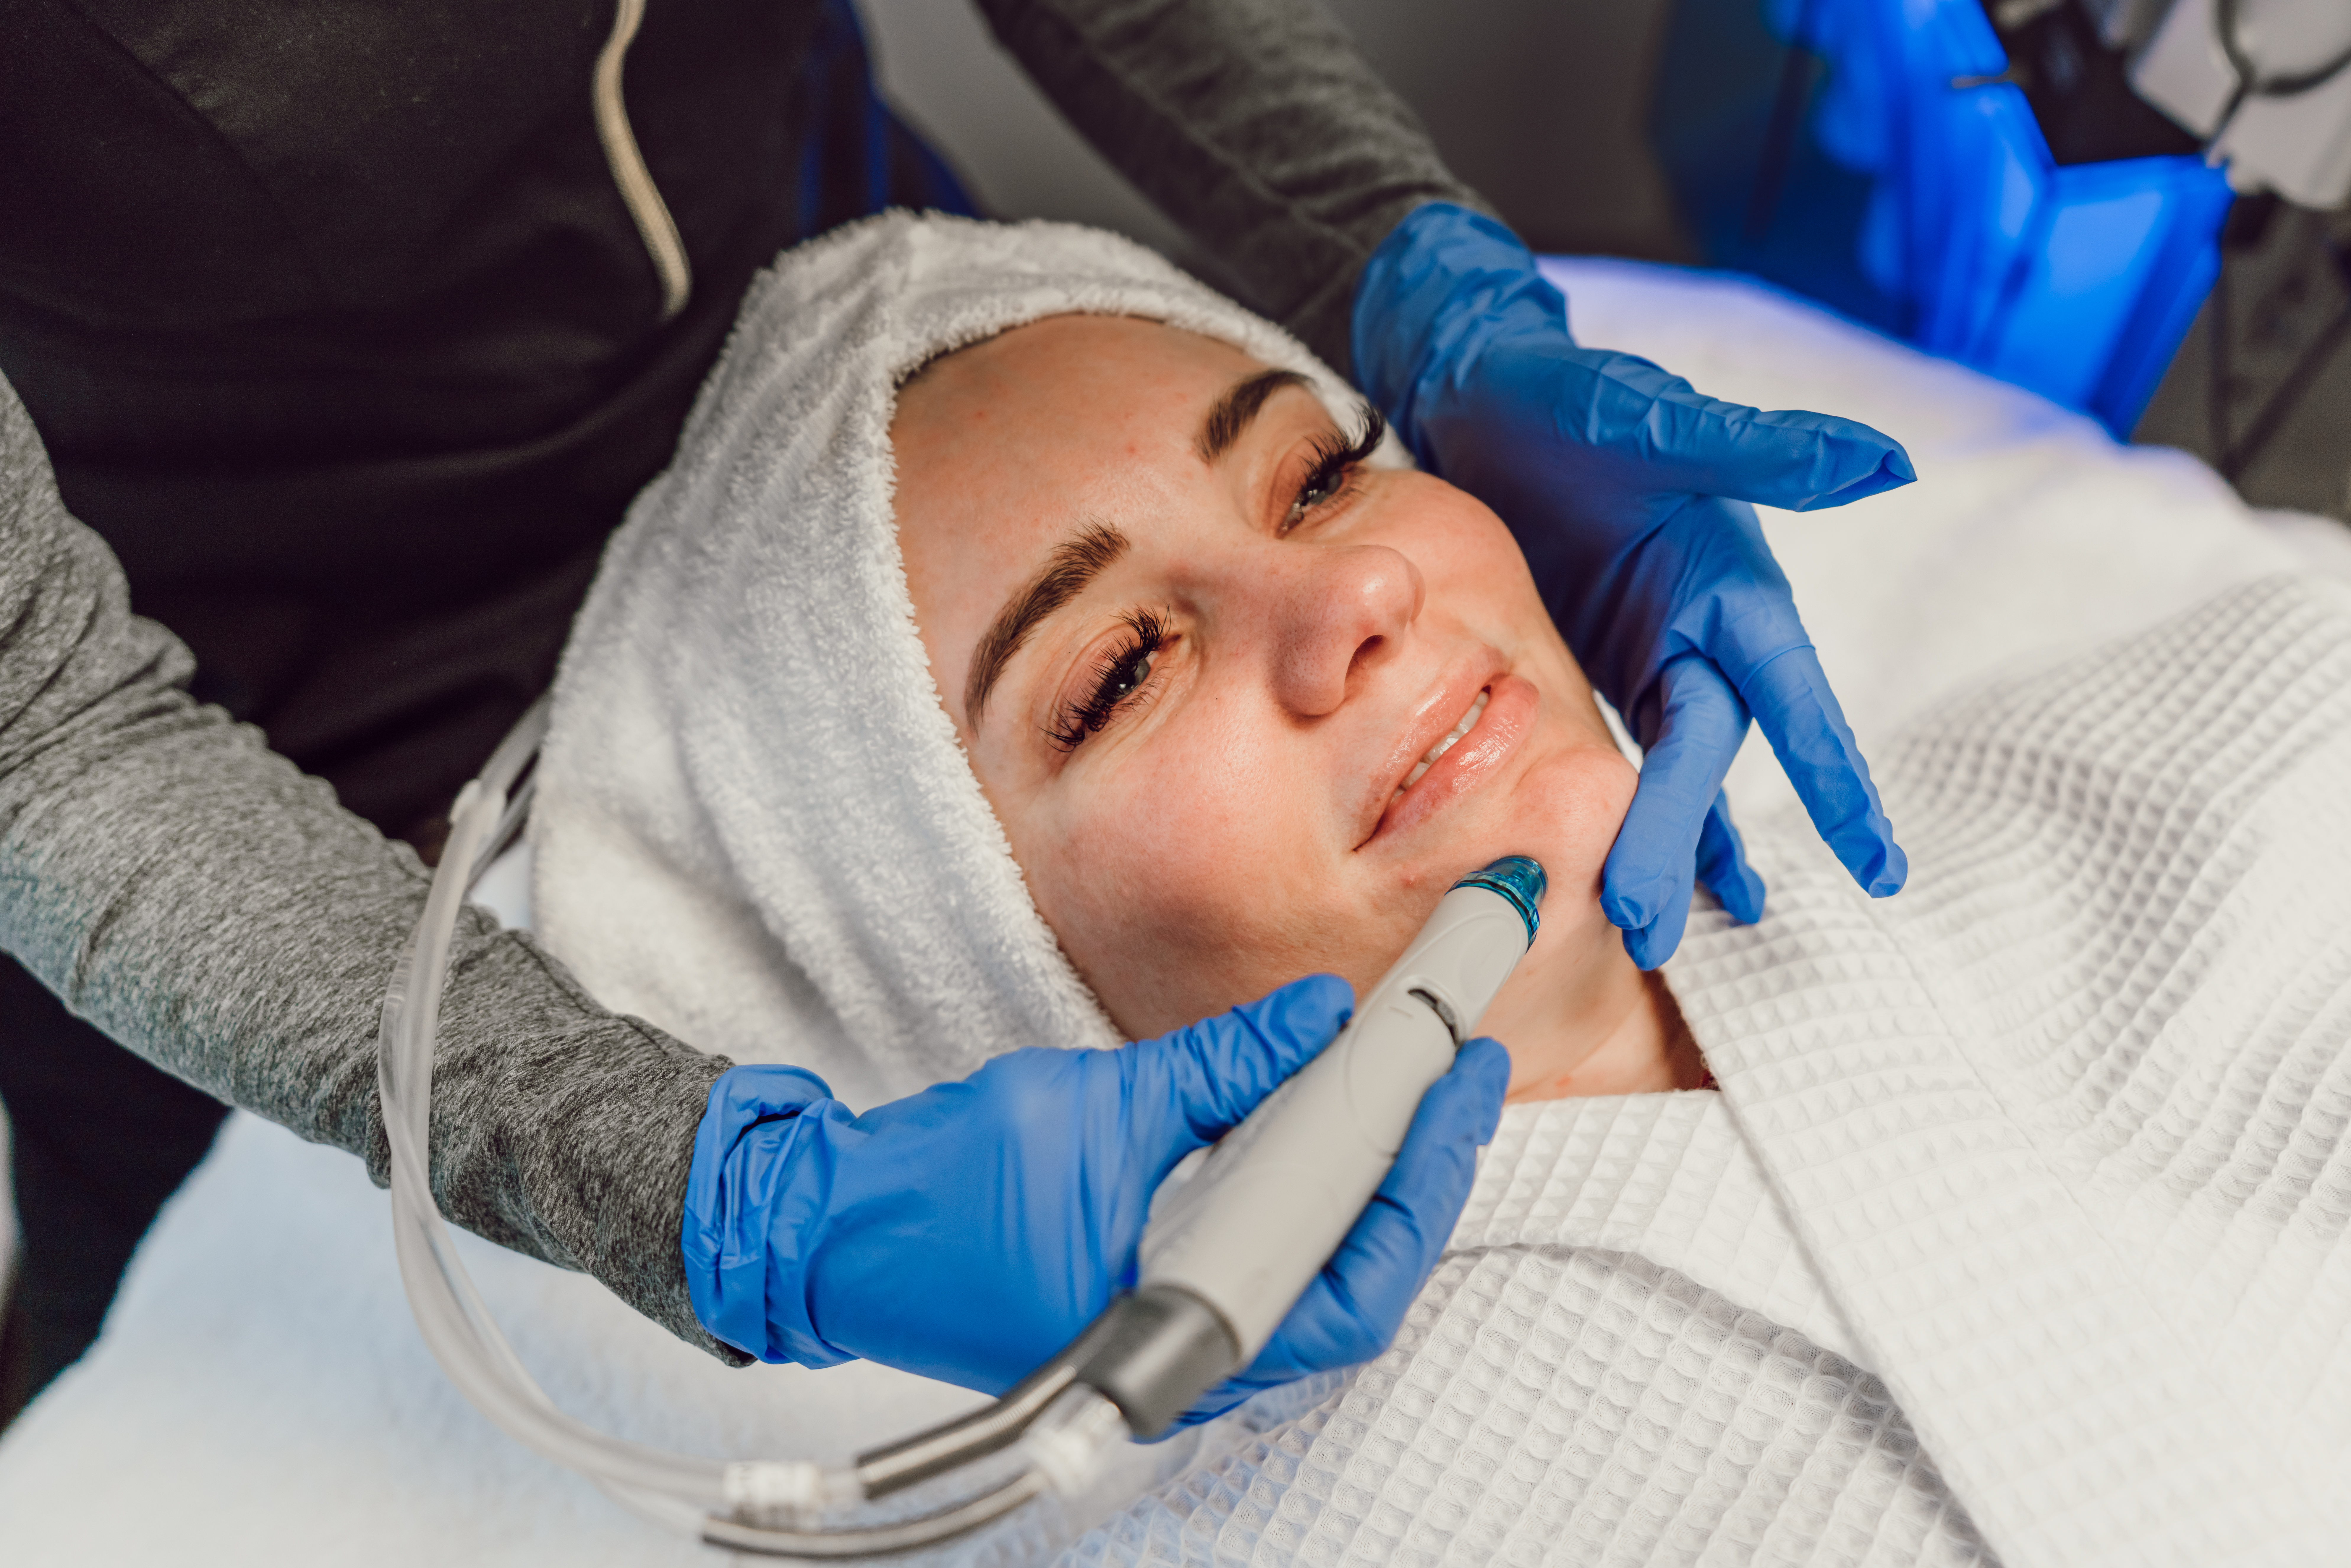 All About the Hydrafacial + Giveaway for Hydrafacial - Pretty in